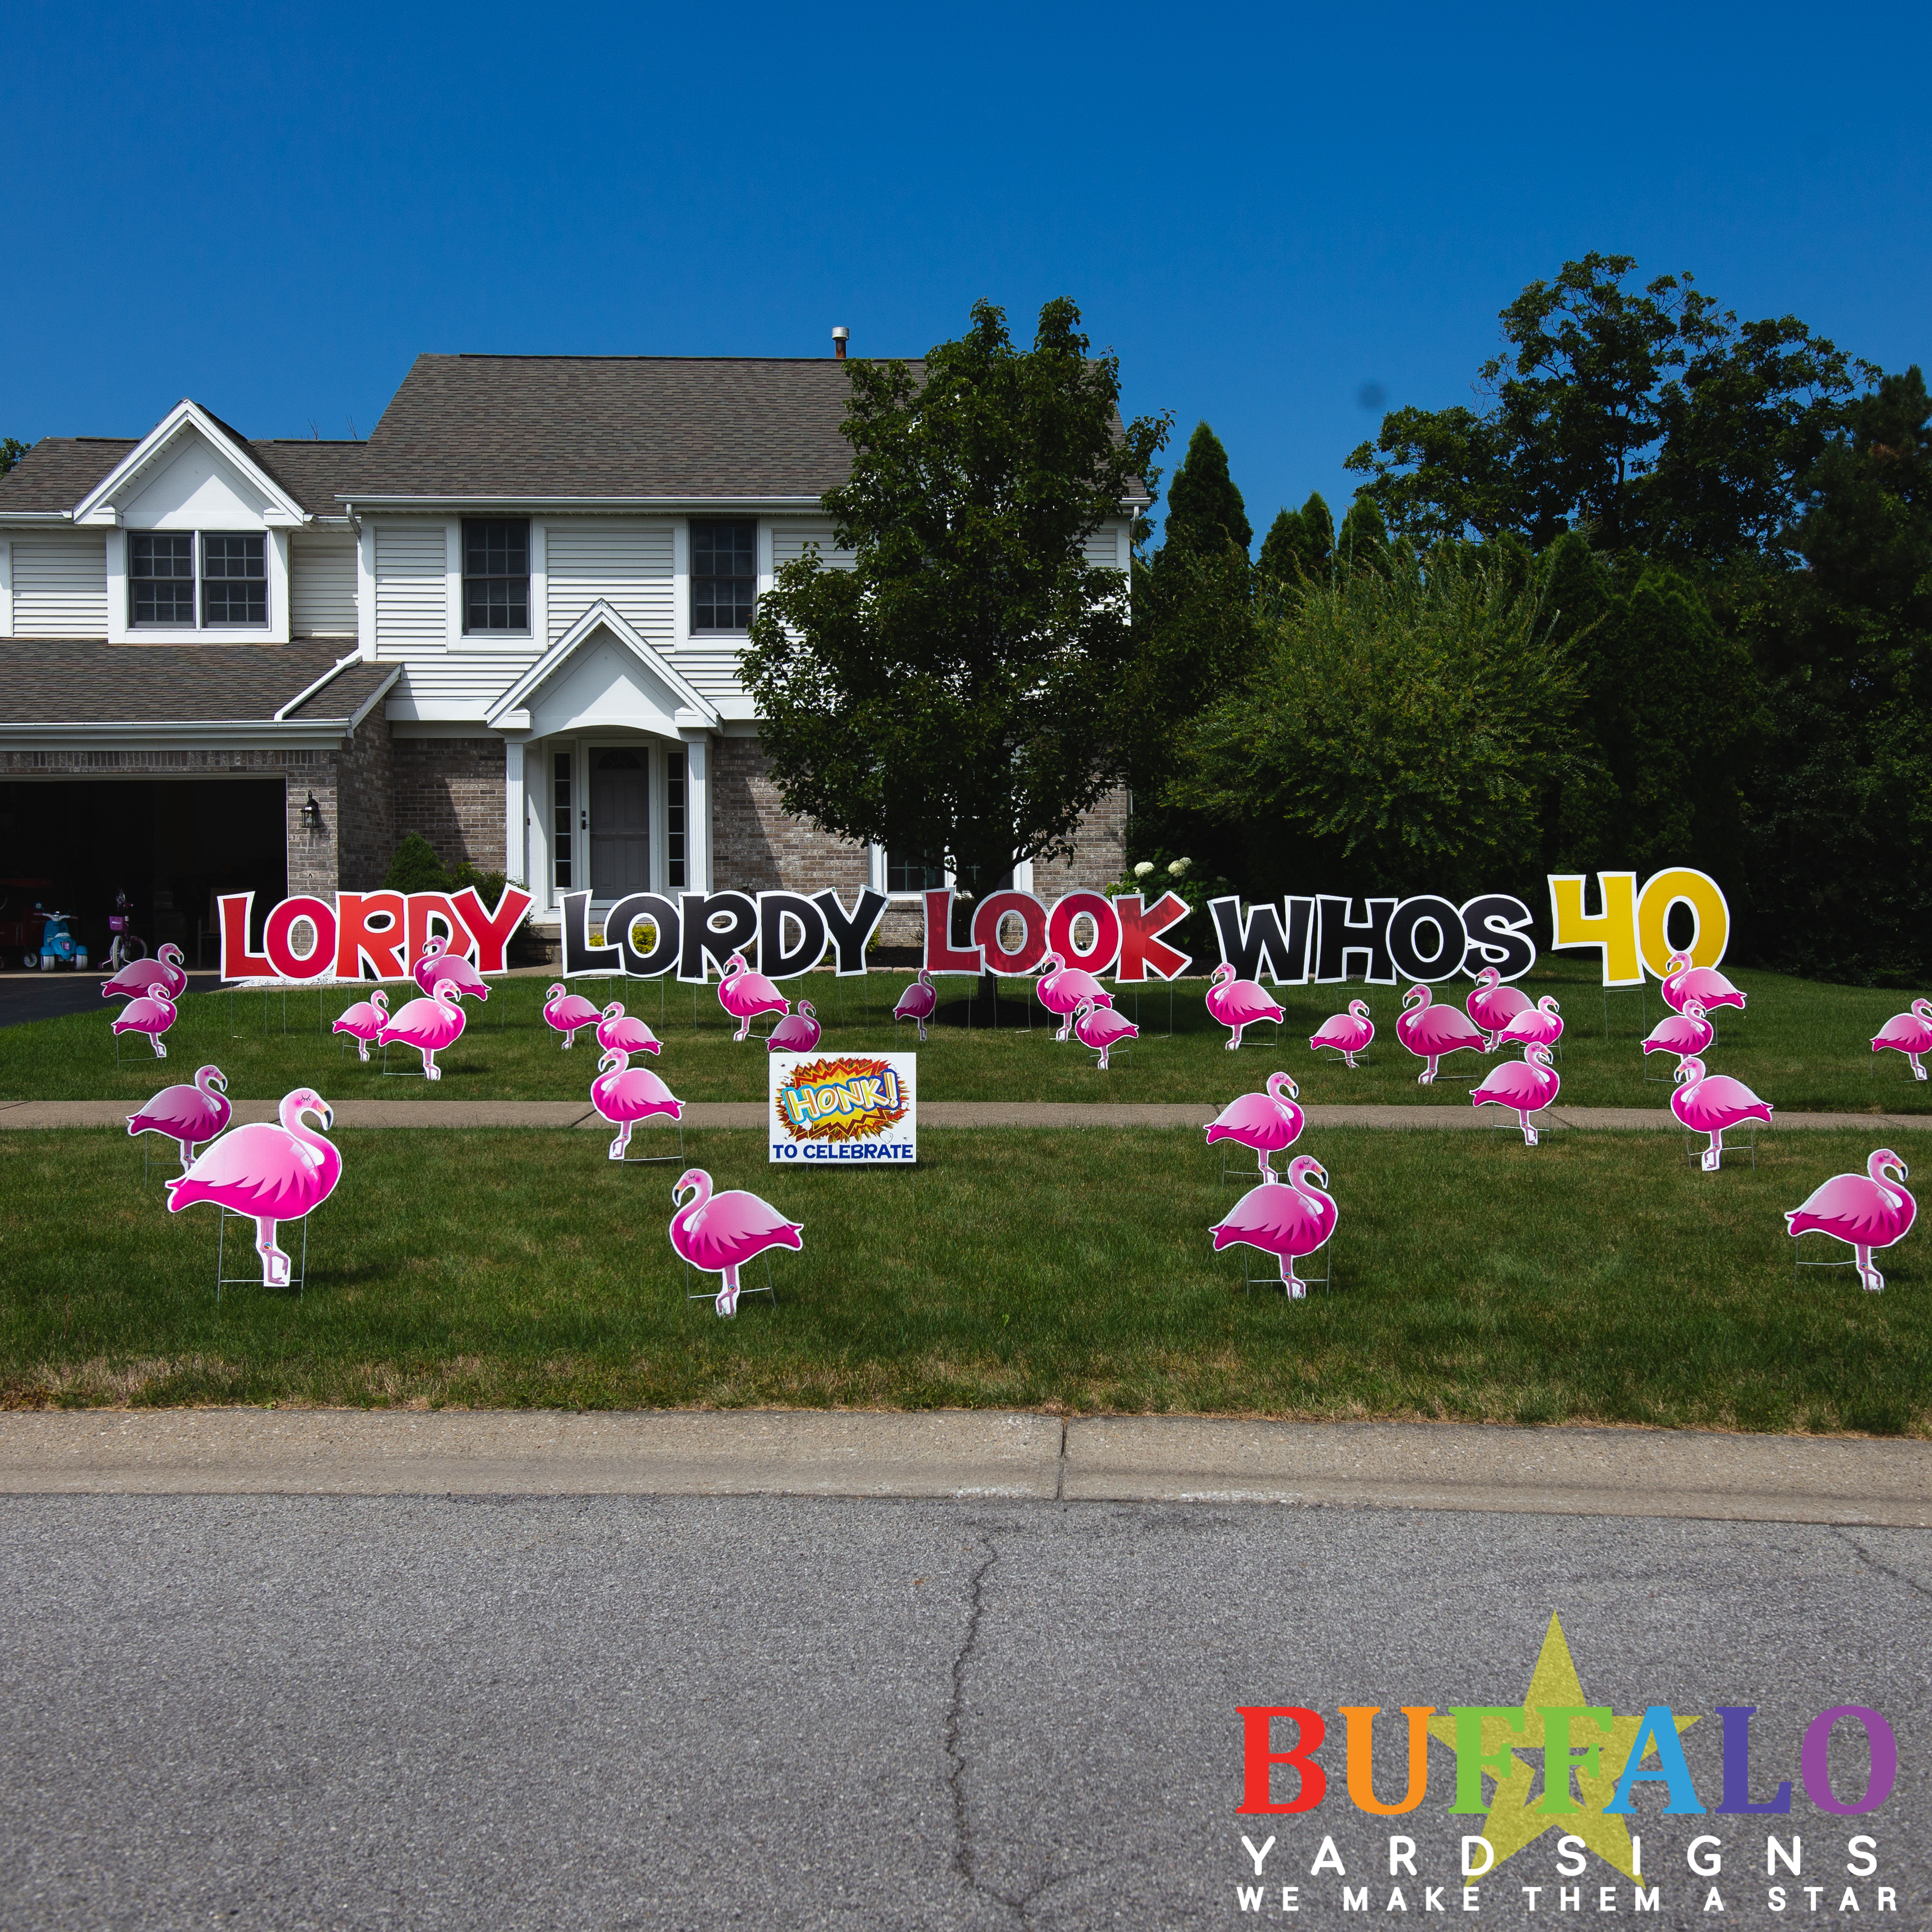 Flamingo flock with custom yard sign that says Lordy Lordy Look Whos 40